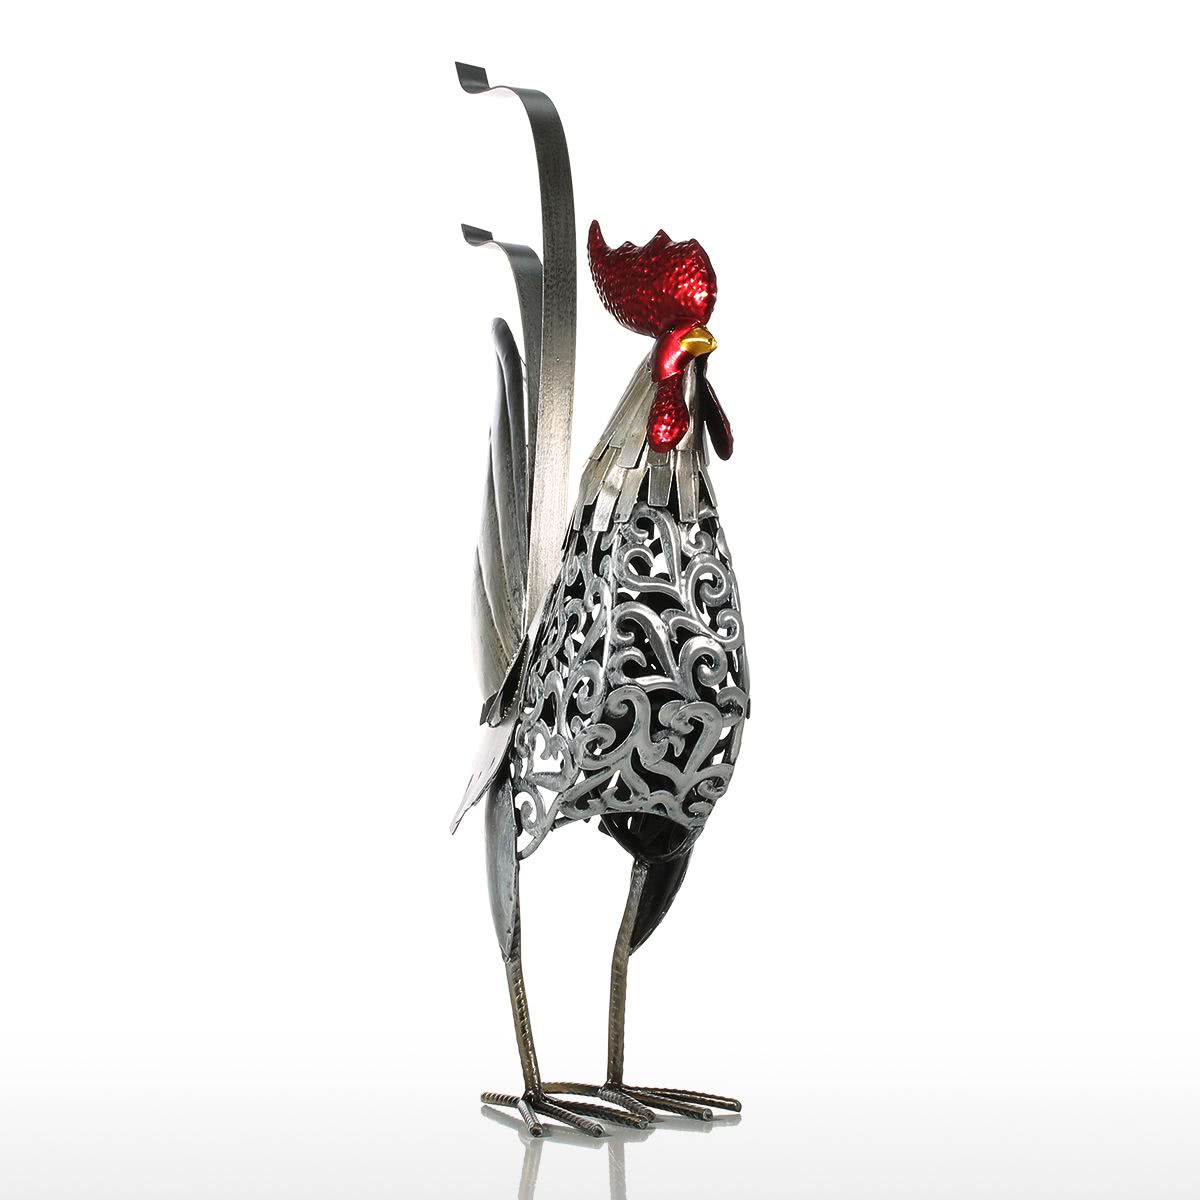 Tooarts Metal Figurine Iron Rooster Home Decor Articles: Tooarts Carved Iron Rooster Metal Sculpture Home Decor